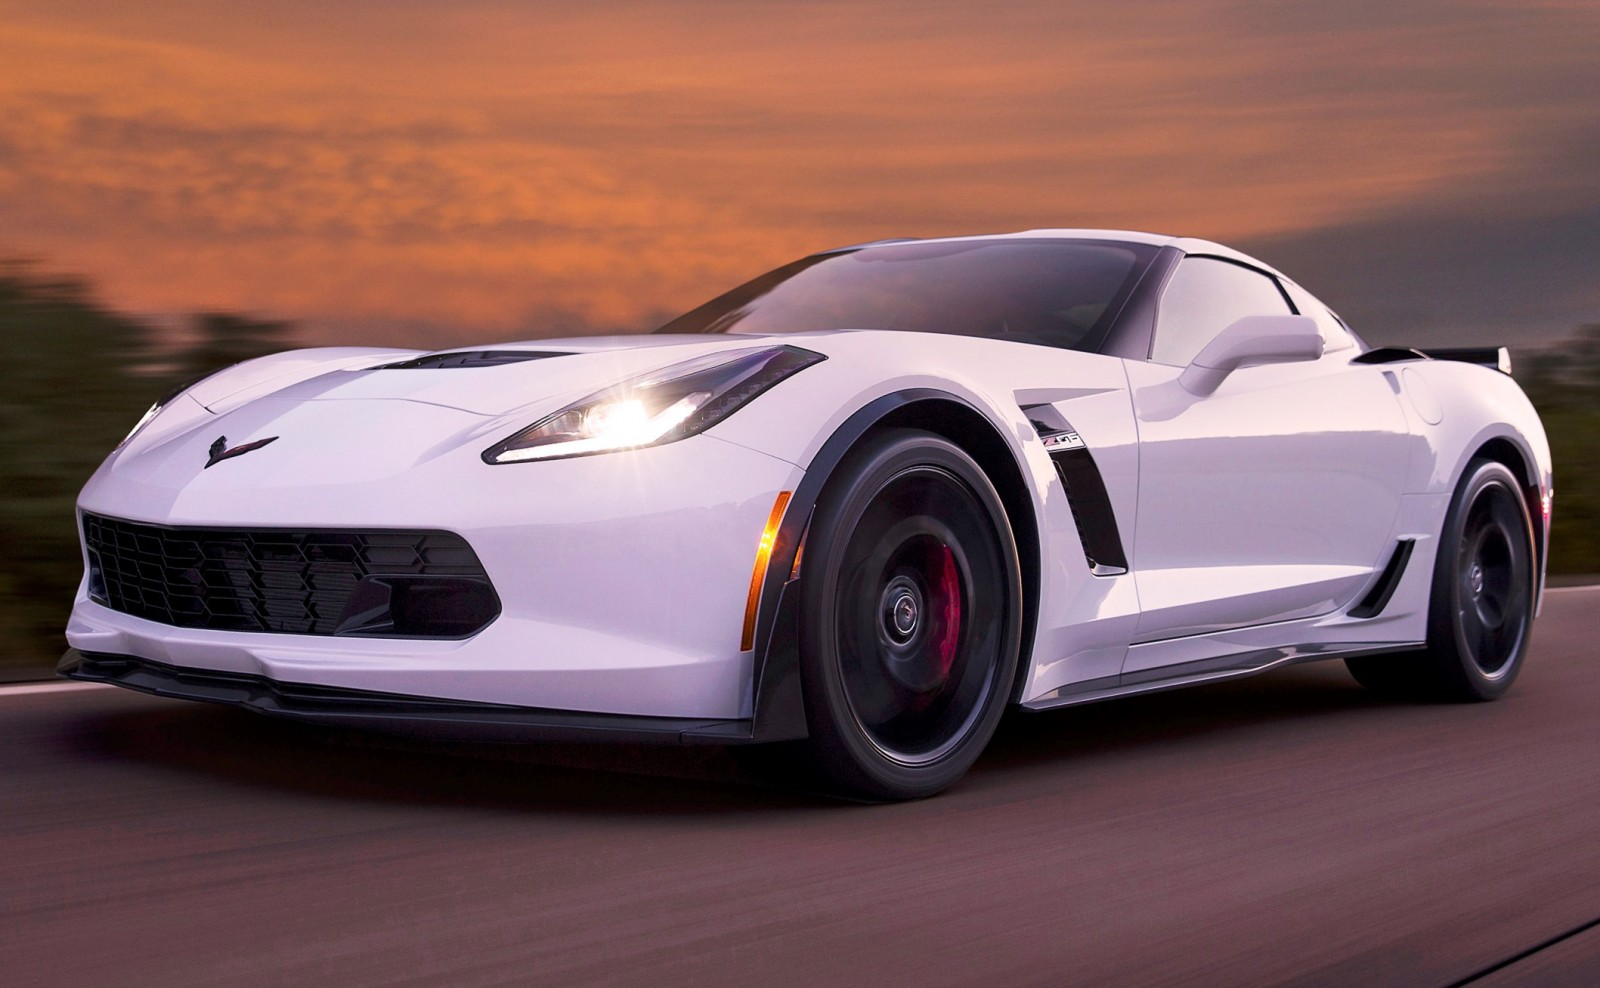 meet tom baker 2014 corvette